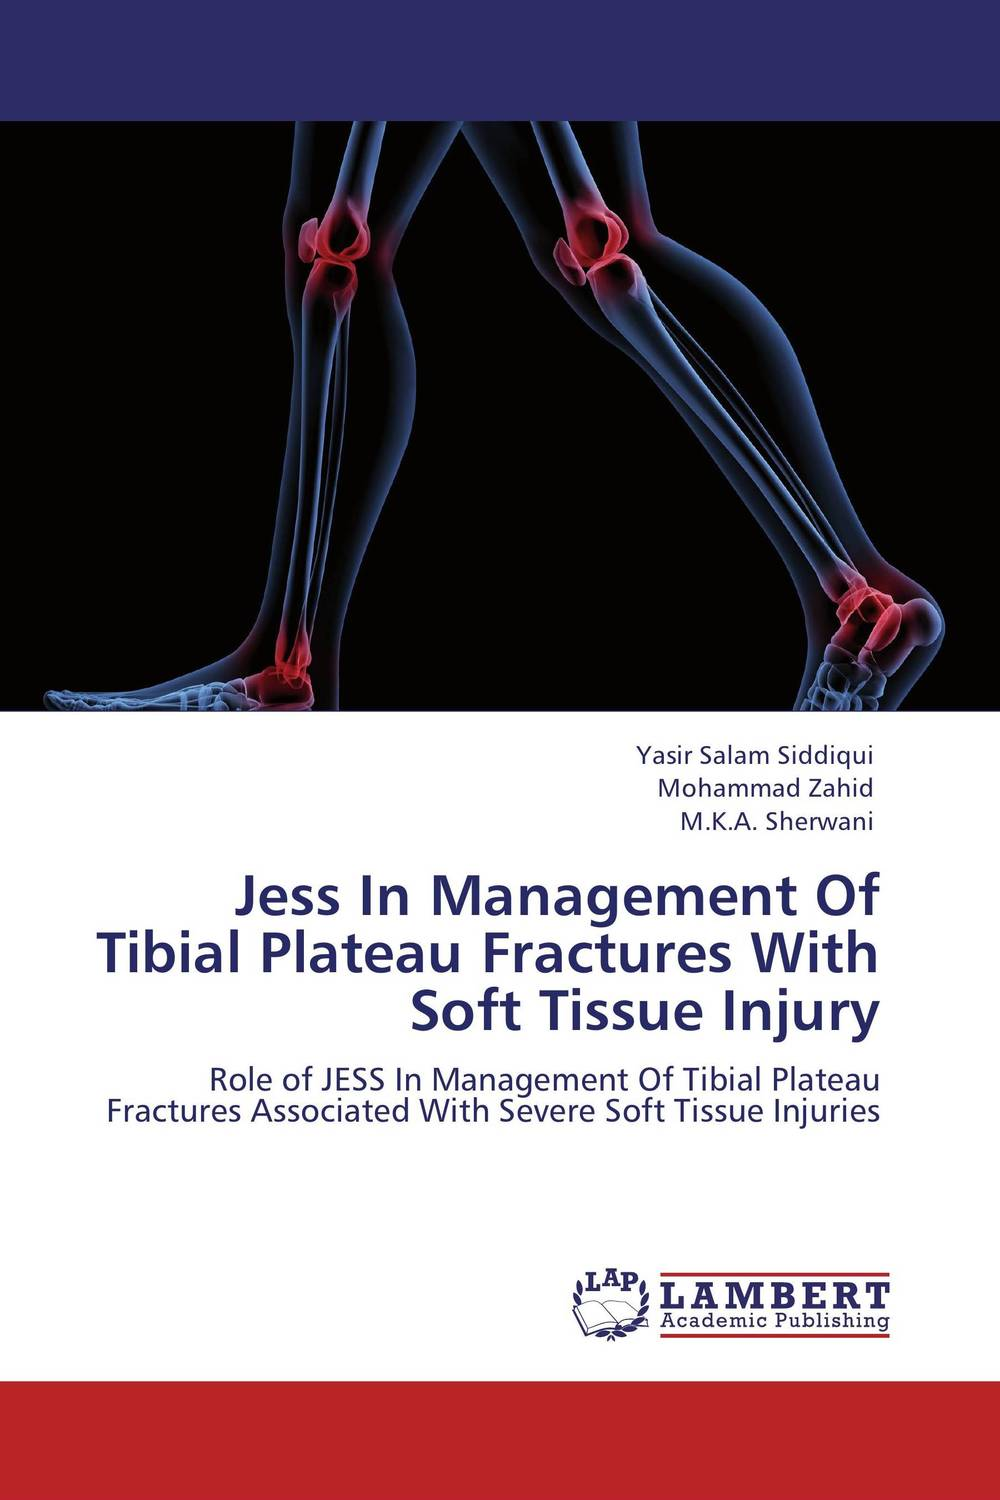 цена на Jess In Management Of Tibial Plateau Fractures With Soft Tissue Injury